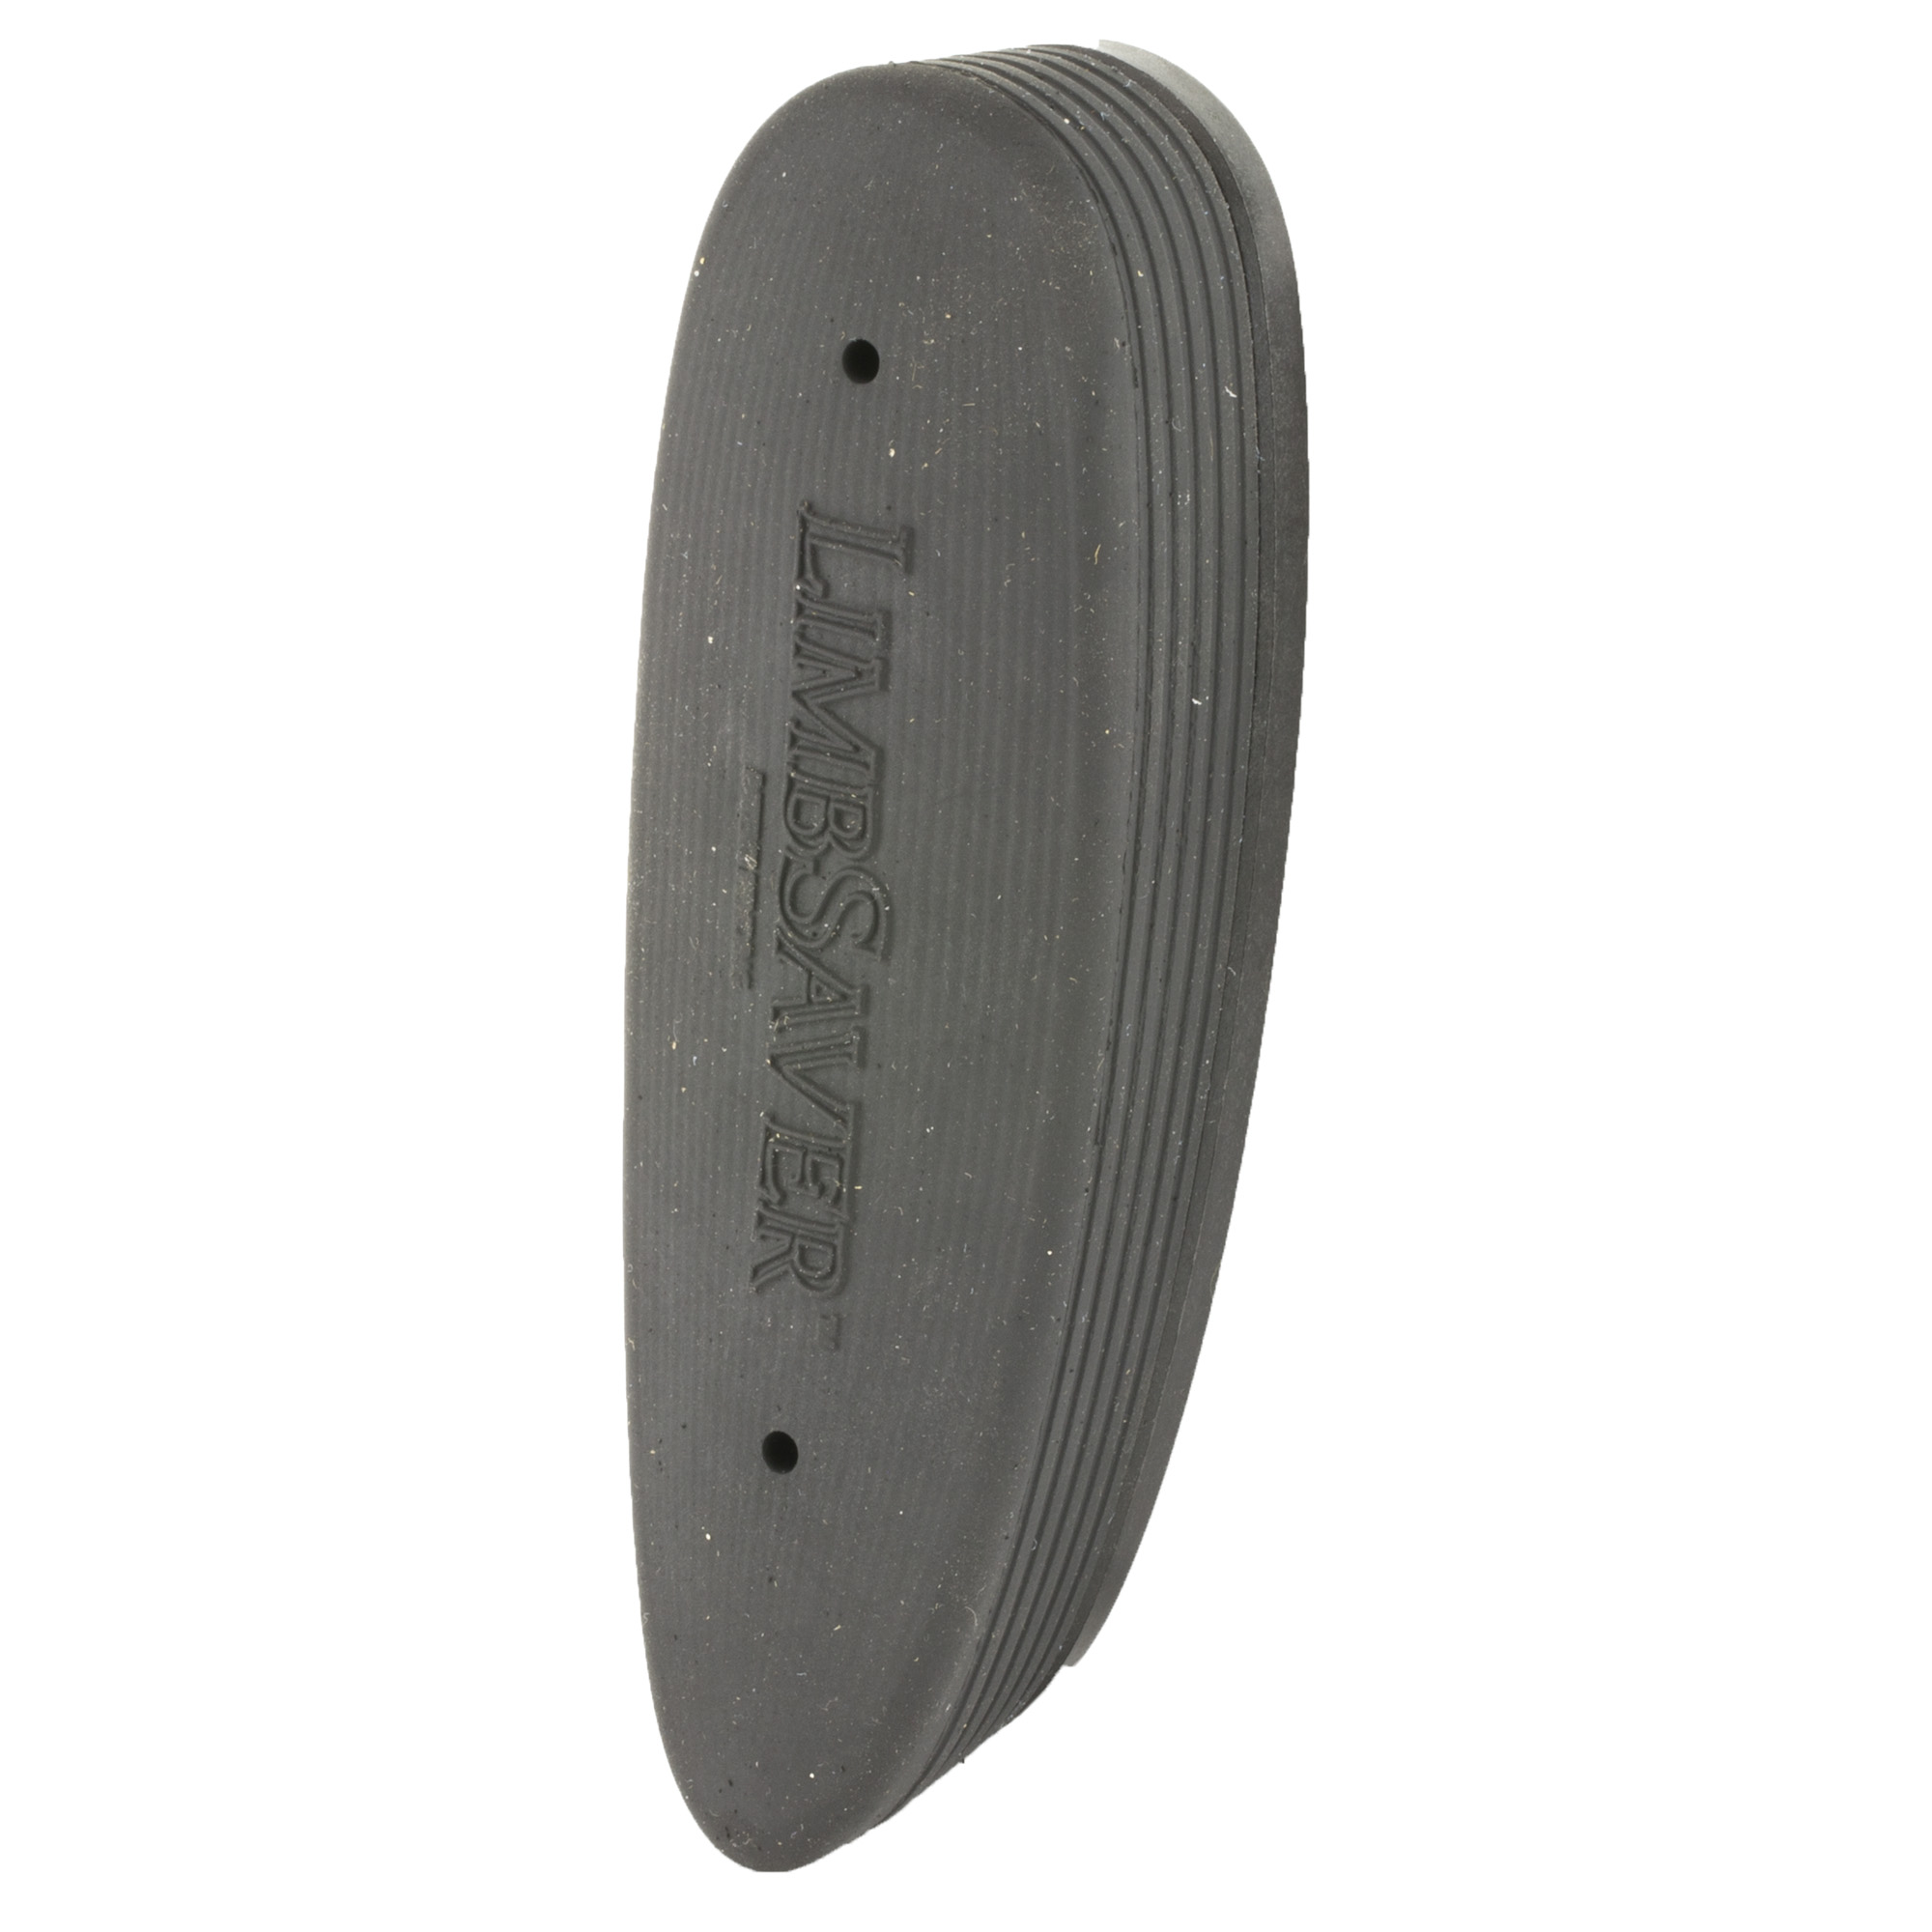 """The customized LimbSaver's Classic Precision-Fit Recoil Pad is designed to specifically fit a variety of rifles"""" shotguns"""" and muzzleloaders"""" reducing felt recoil by up to 70 percent. The recoil pad enables you to shoot longer without discomfort and bruising"""" while also helping to increase accuracy of follow-up shots and provide improved control for maximum stability. It's made from LimbSaver's proprietary NAVCOM technology (Noise and Vibration Control Material)"""" which effectively absorbs a wide range of frequencies to dissipate energy and vibration."""